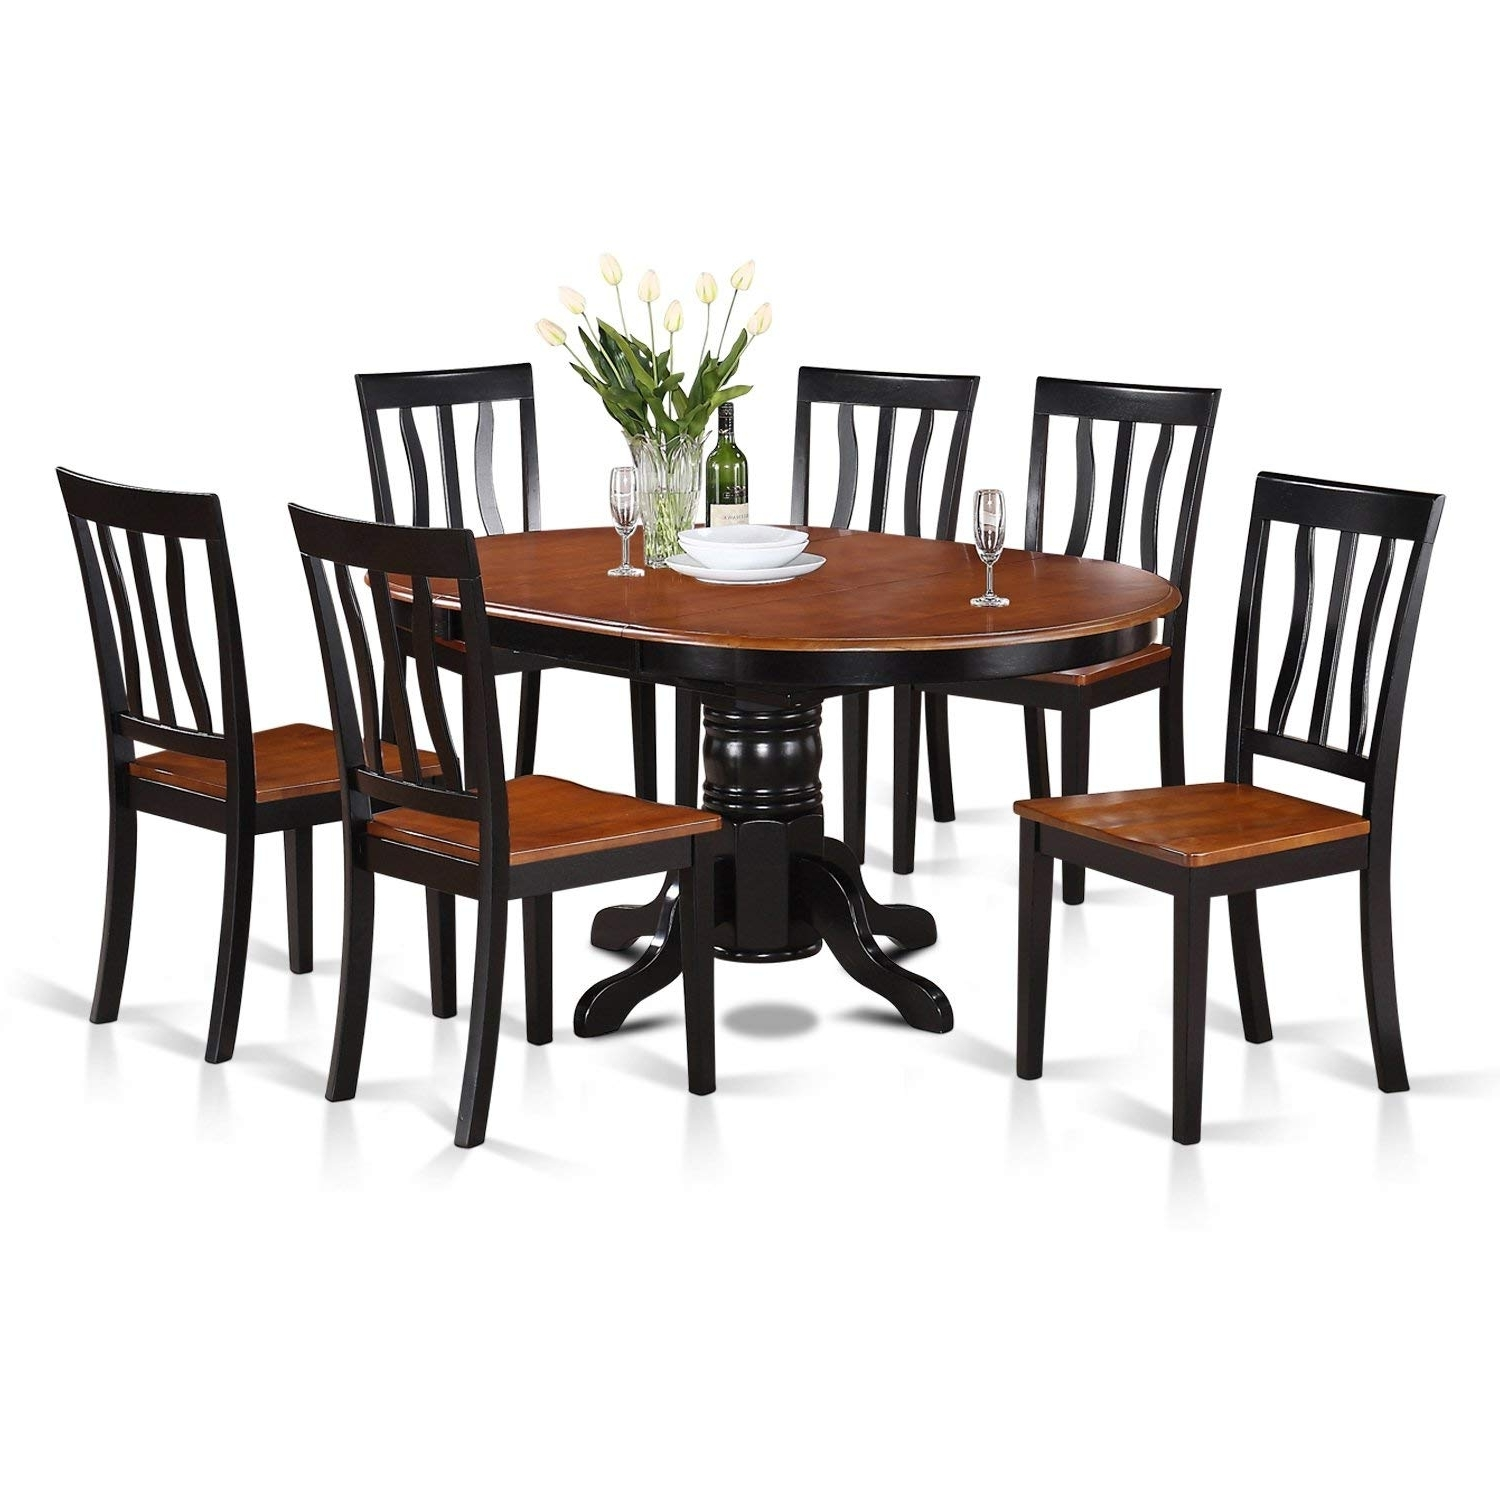 6 Seat Dining Table Sets Intended For Current Amazon: East West Furniture Avat7 Blk W 7 Piece Dining Table Set (Gallery 1 of 25)